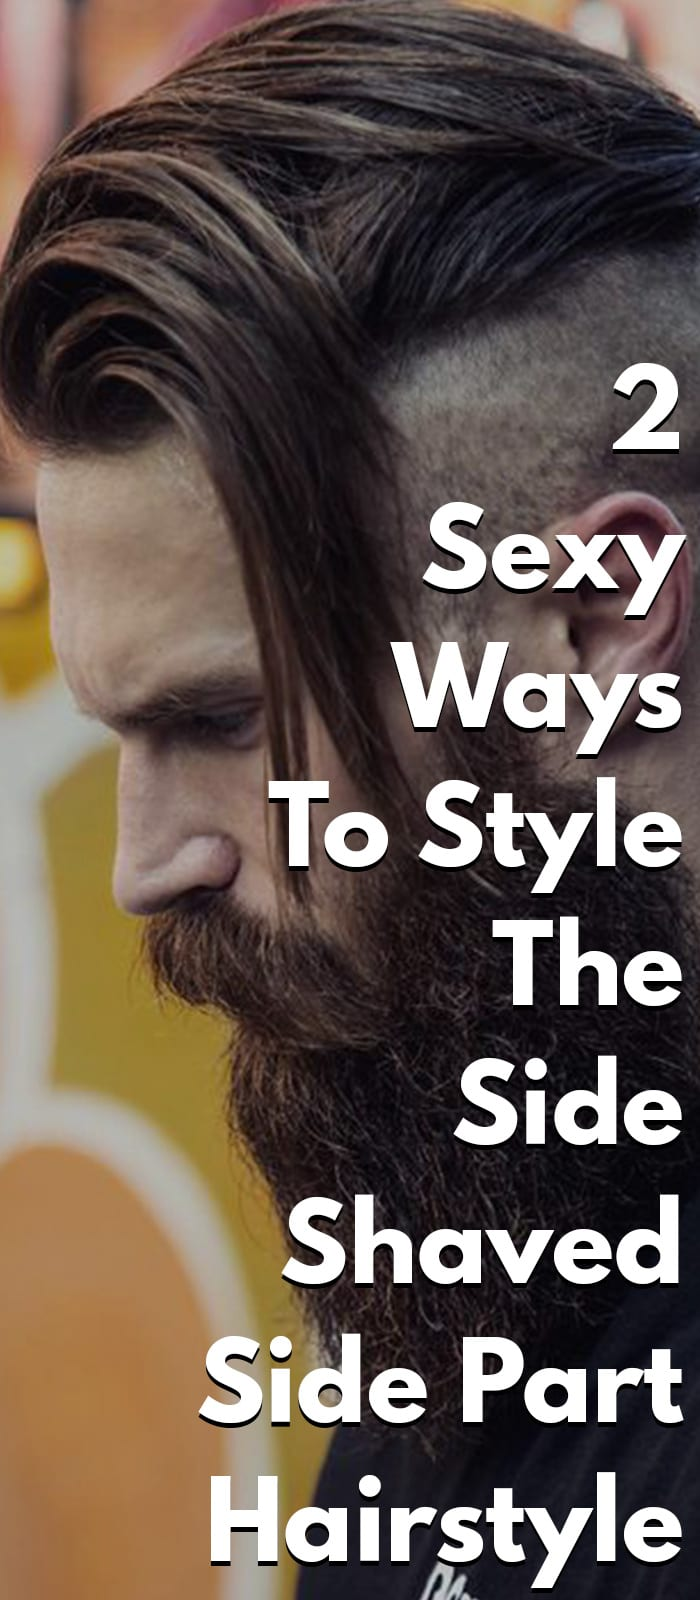 2 Sexy Ways To Style The Side Shaved Side Part Hairstyle